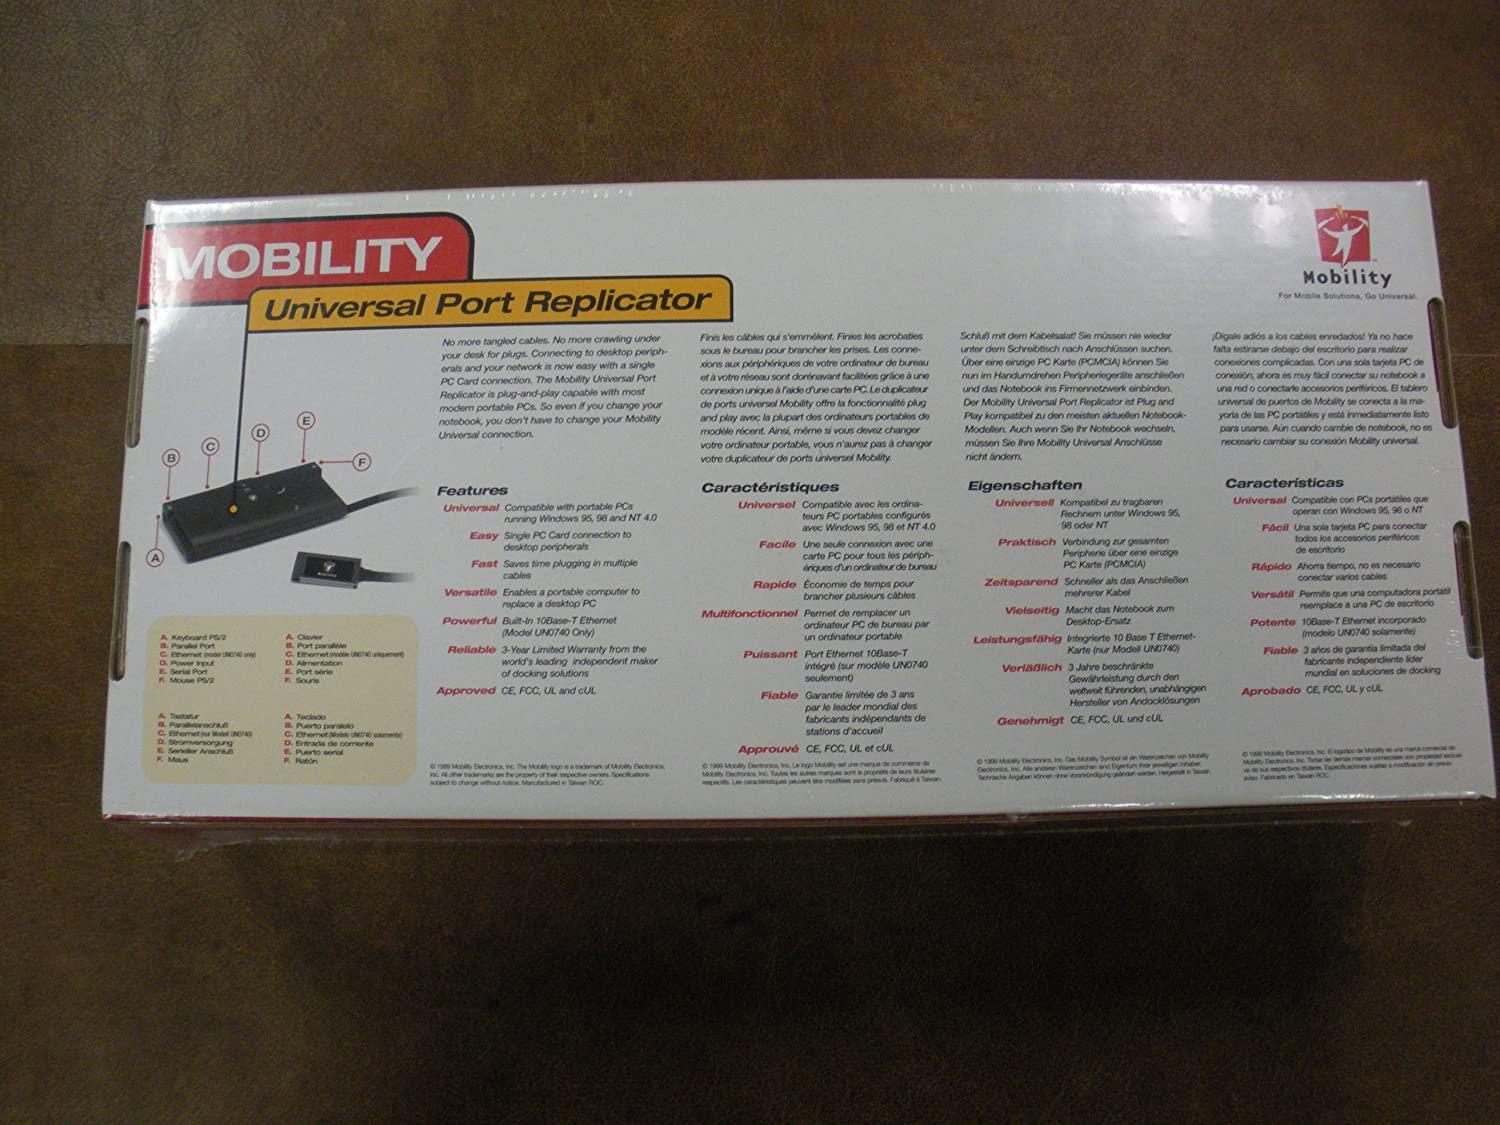 Amazon.com: Mobility Universal Port Replicator Un0700-10 ...